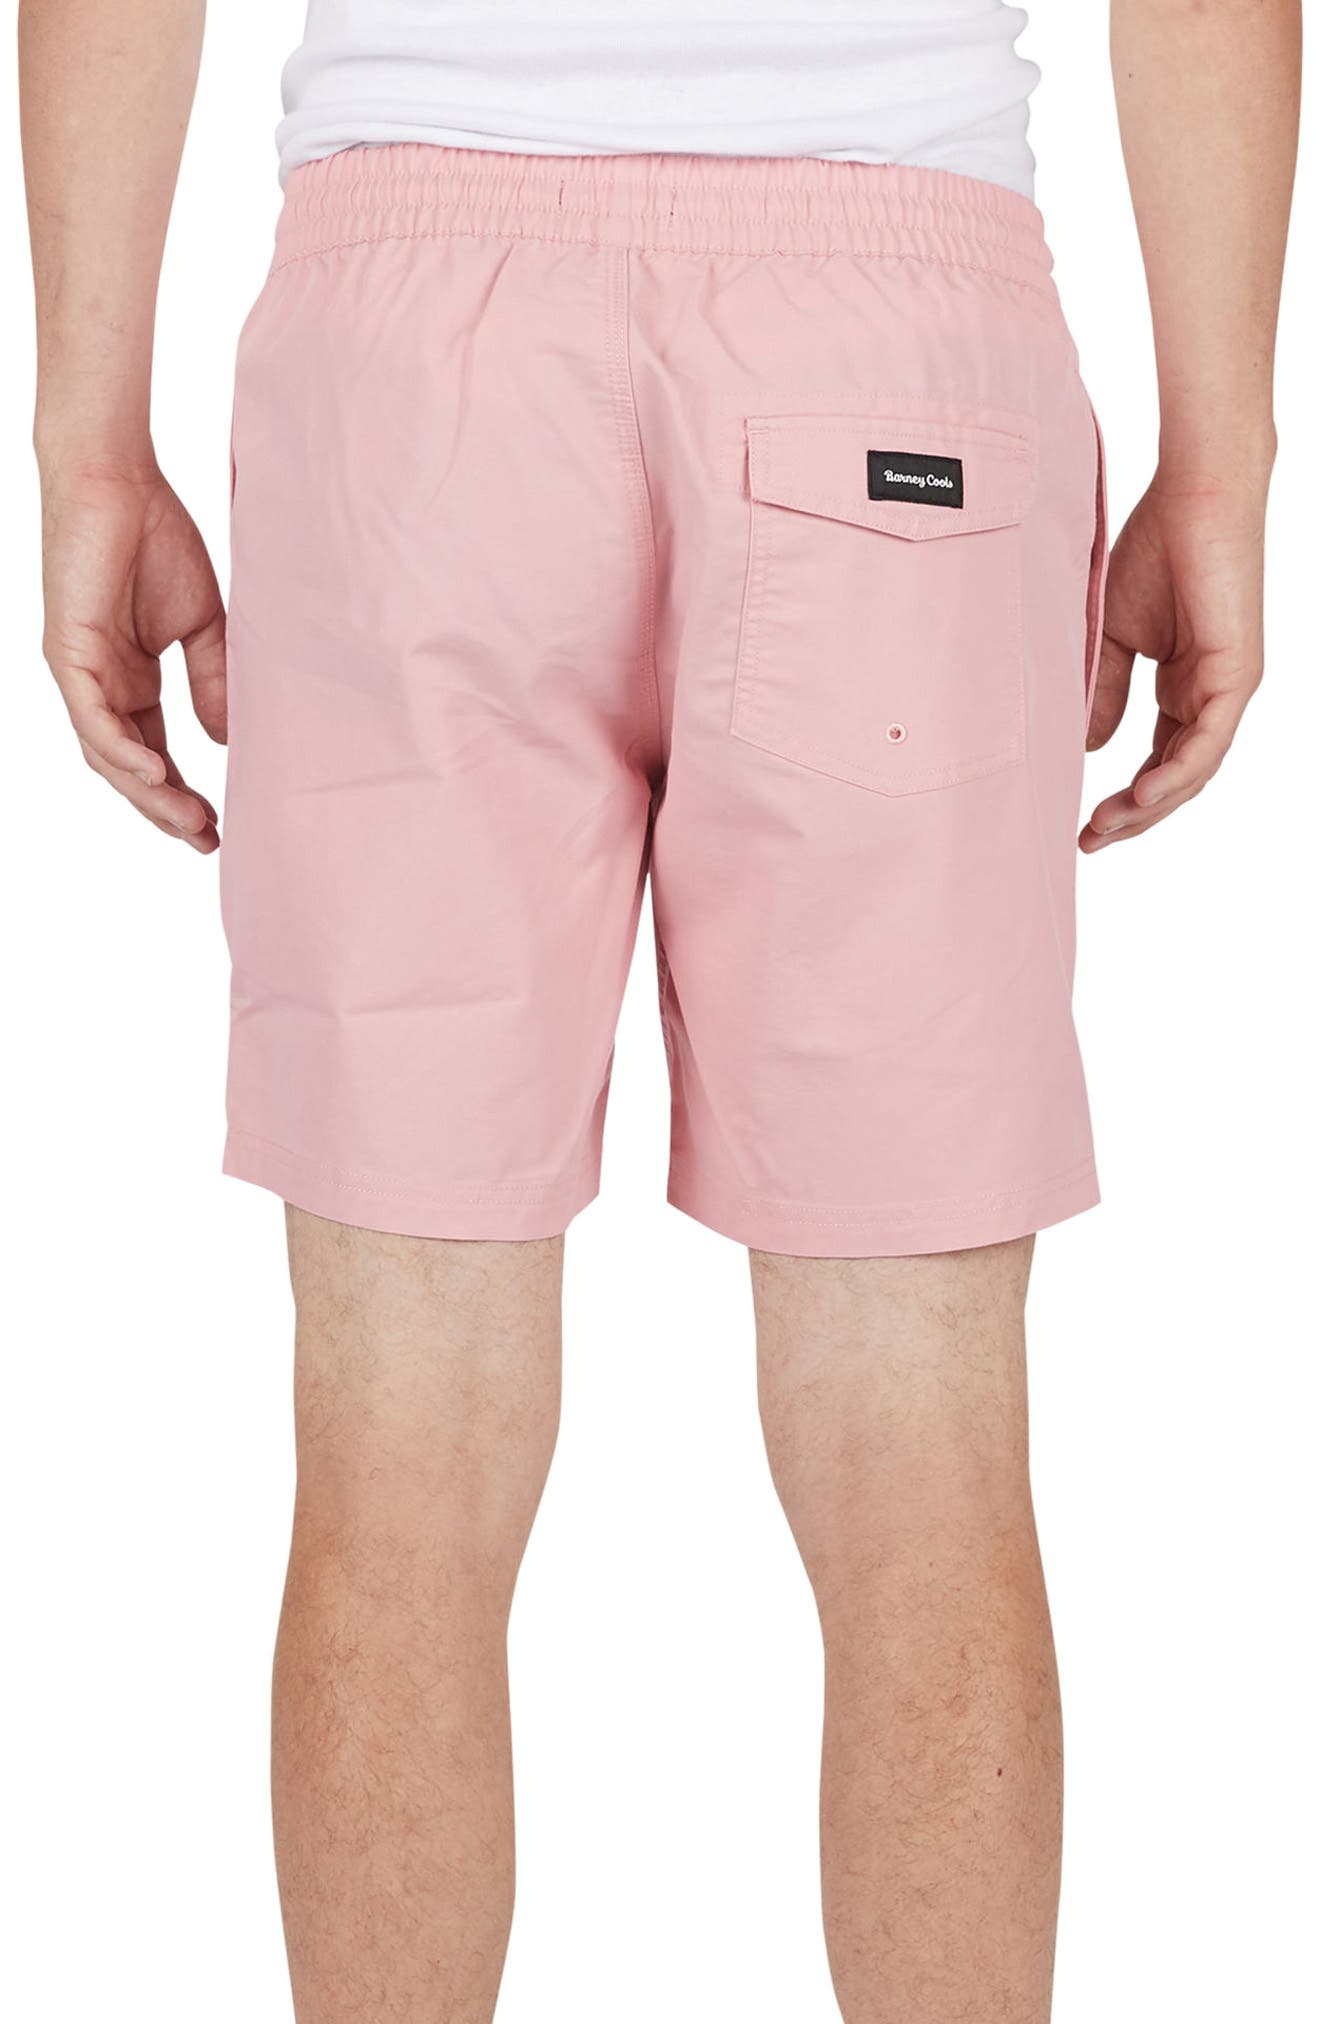 Amphibious Shorts,                             Alternate thumbnail 2, color,                             661